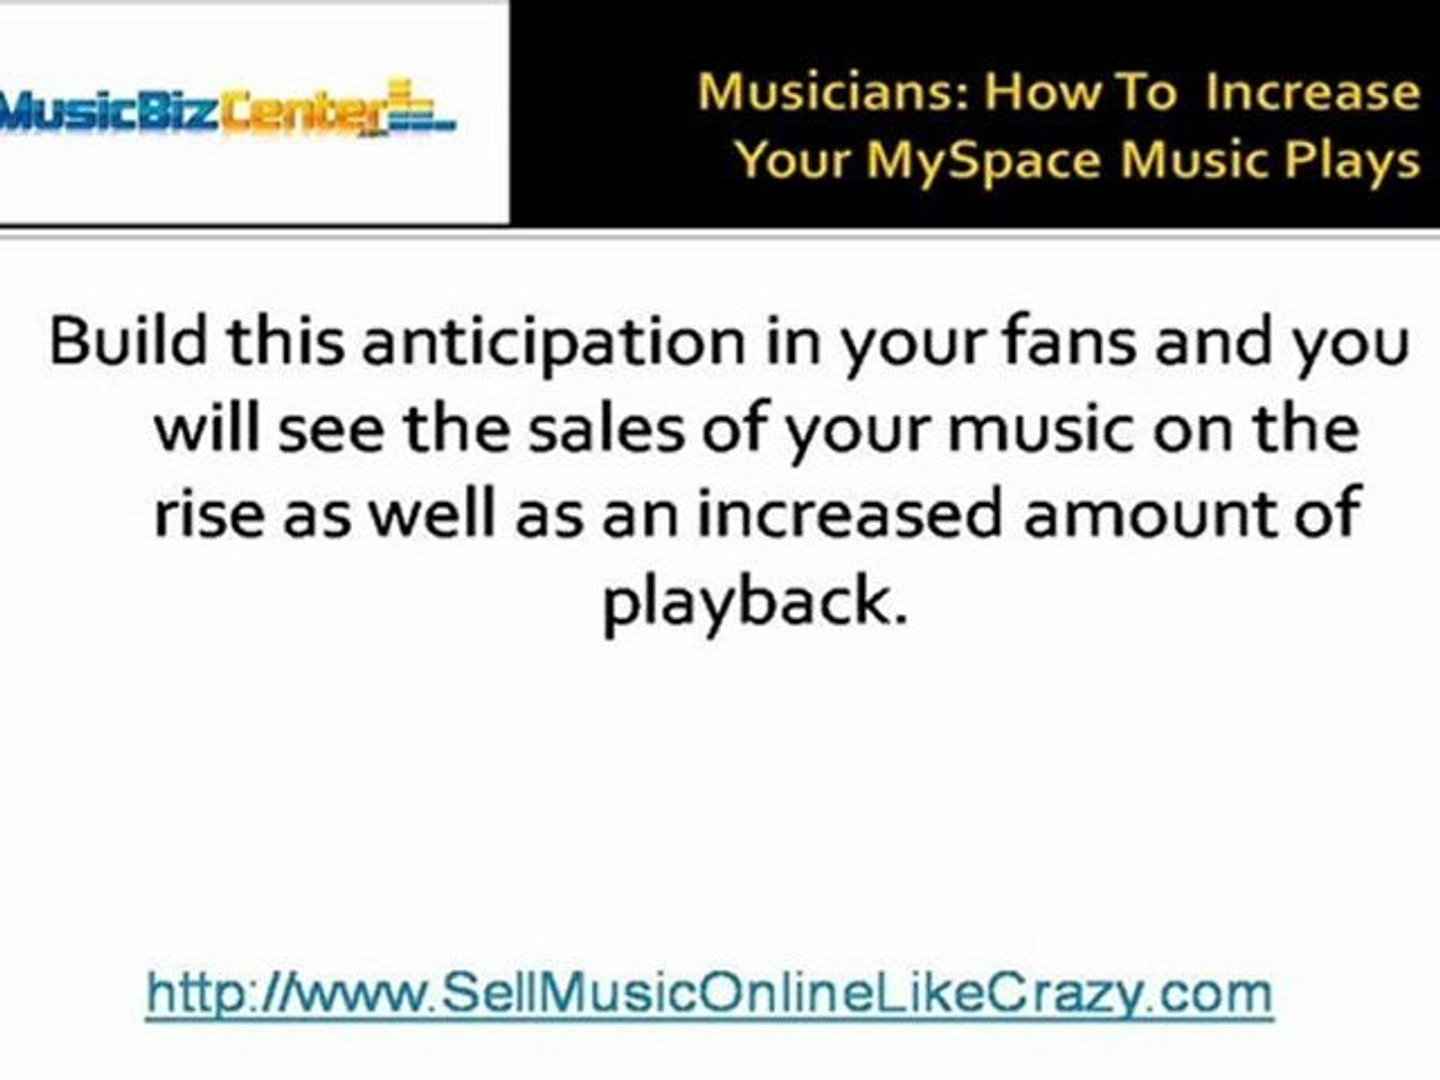 Musicians: How To Increase Your MySpace Music Plays